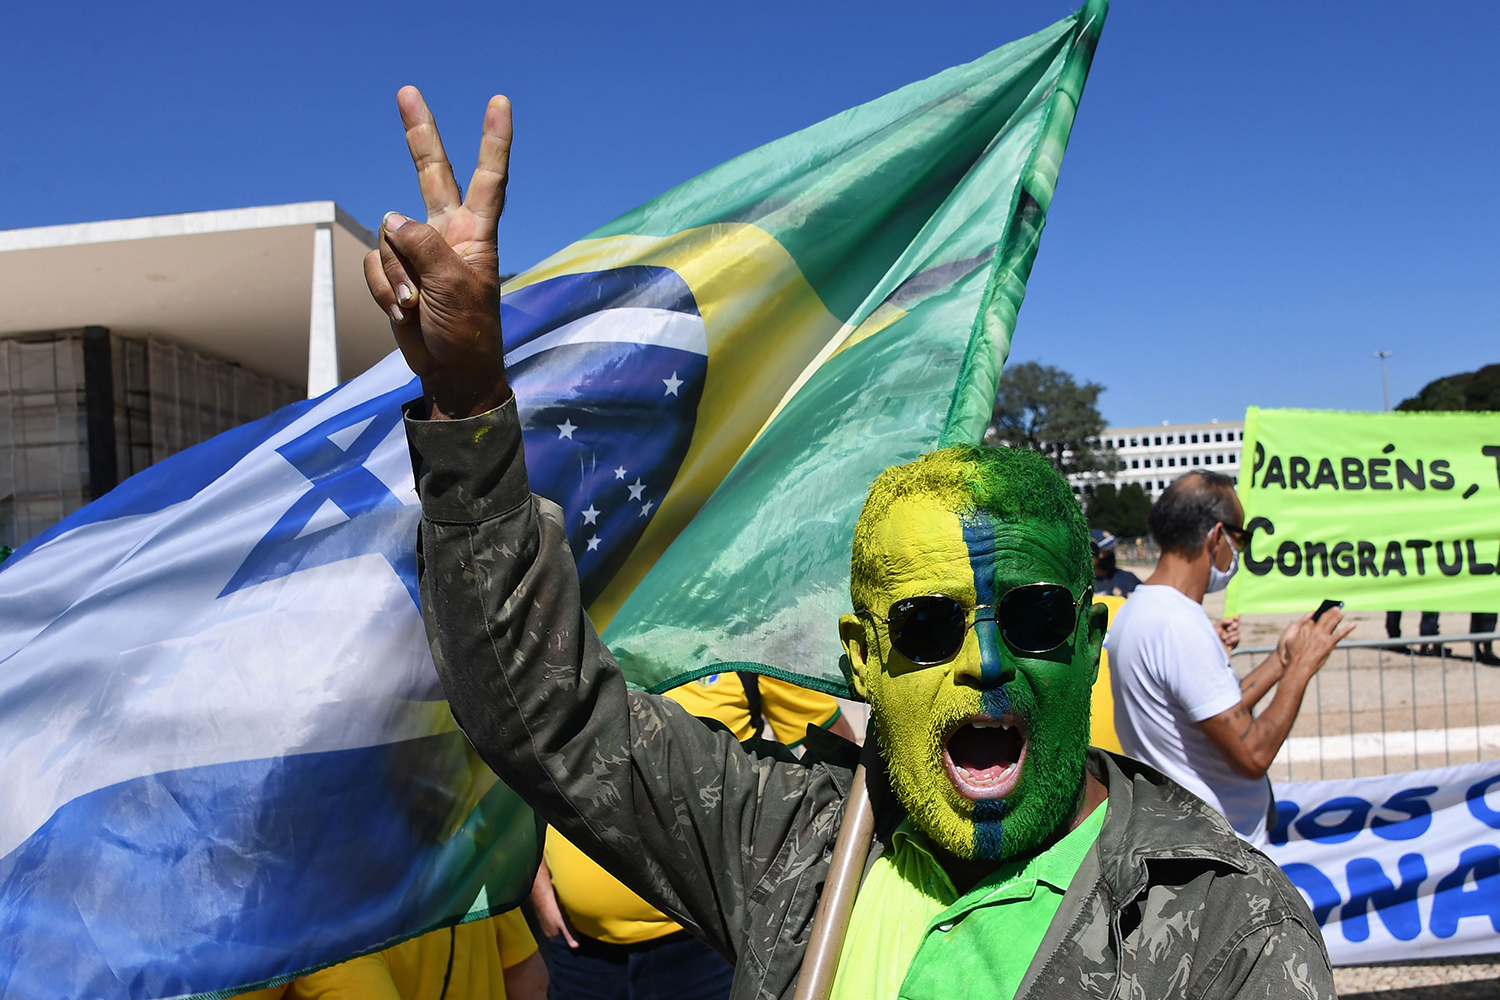 """A man shows support for Brazilian President Jair Bolsonaro during a demonstration in Brasilia on May 31. Bolsonaro has berated governors and mayors for imposing what he calls """"the tyranny of total quarantine."""" Even as his country surpassed Russia to have the world's second-highest death toll, Bolsonaro called for Brazil's football season to resume. EVARISTO SA/AFP via Getty Images"""